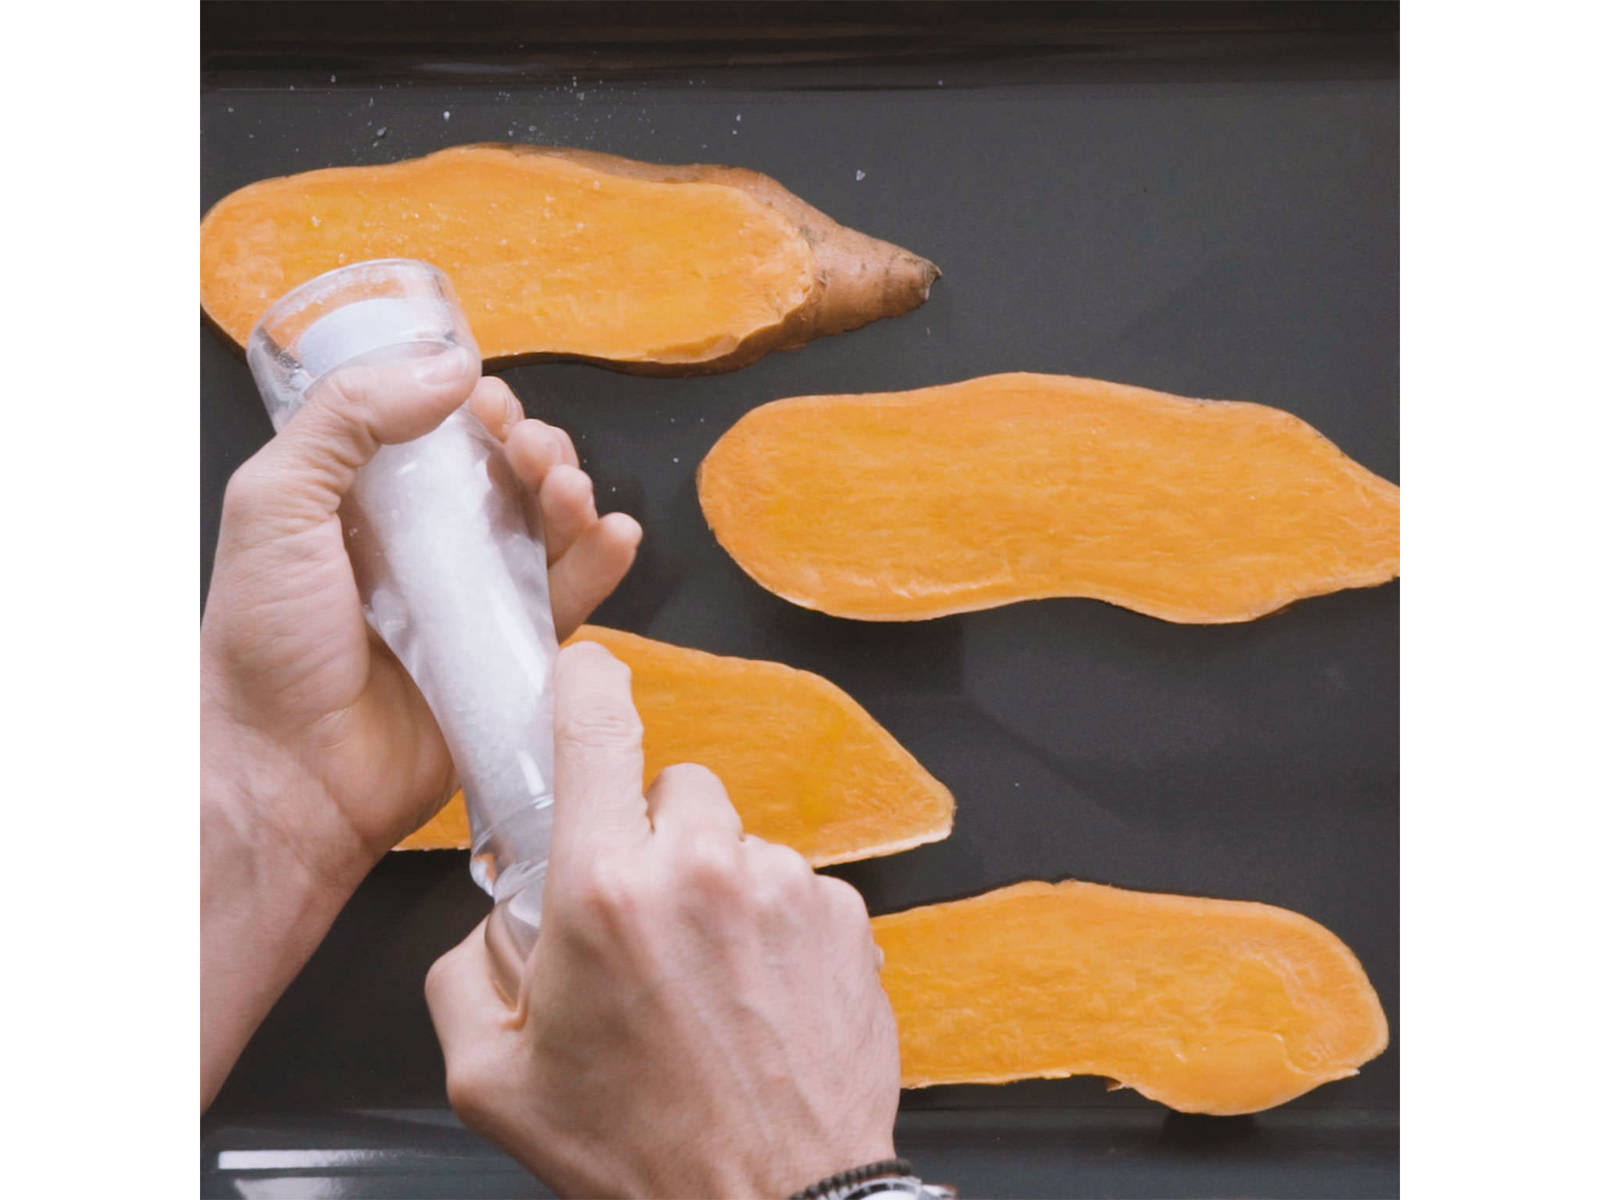 Preheat oven to 180°C/355°F. Cut sweet potato into 1/3-in. thick slices and transfer to a parchment-lined baking sheet. Brush oil on both sides of slices and season with salt. Transfer to oven and bake for approx. 15 min.